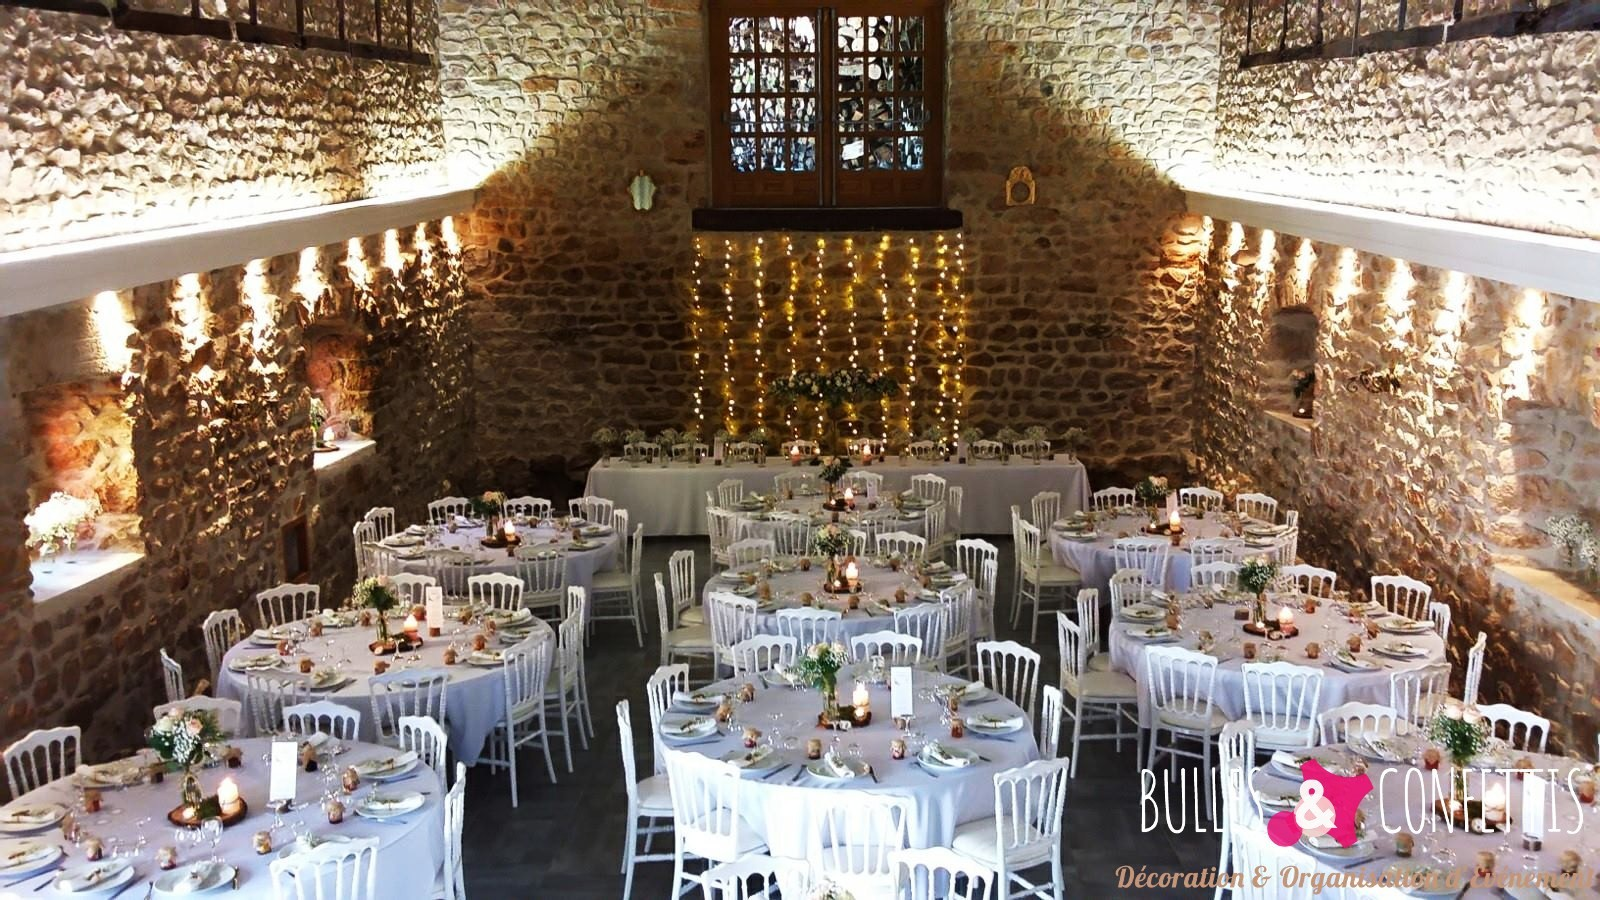 Decoration Mariage Chateau Decoration Mariage Chic Chateau D 39urbillac Bulles